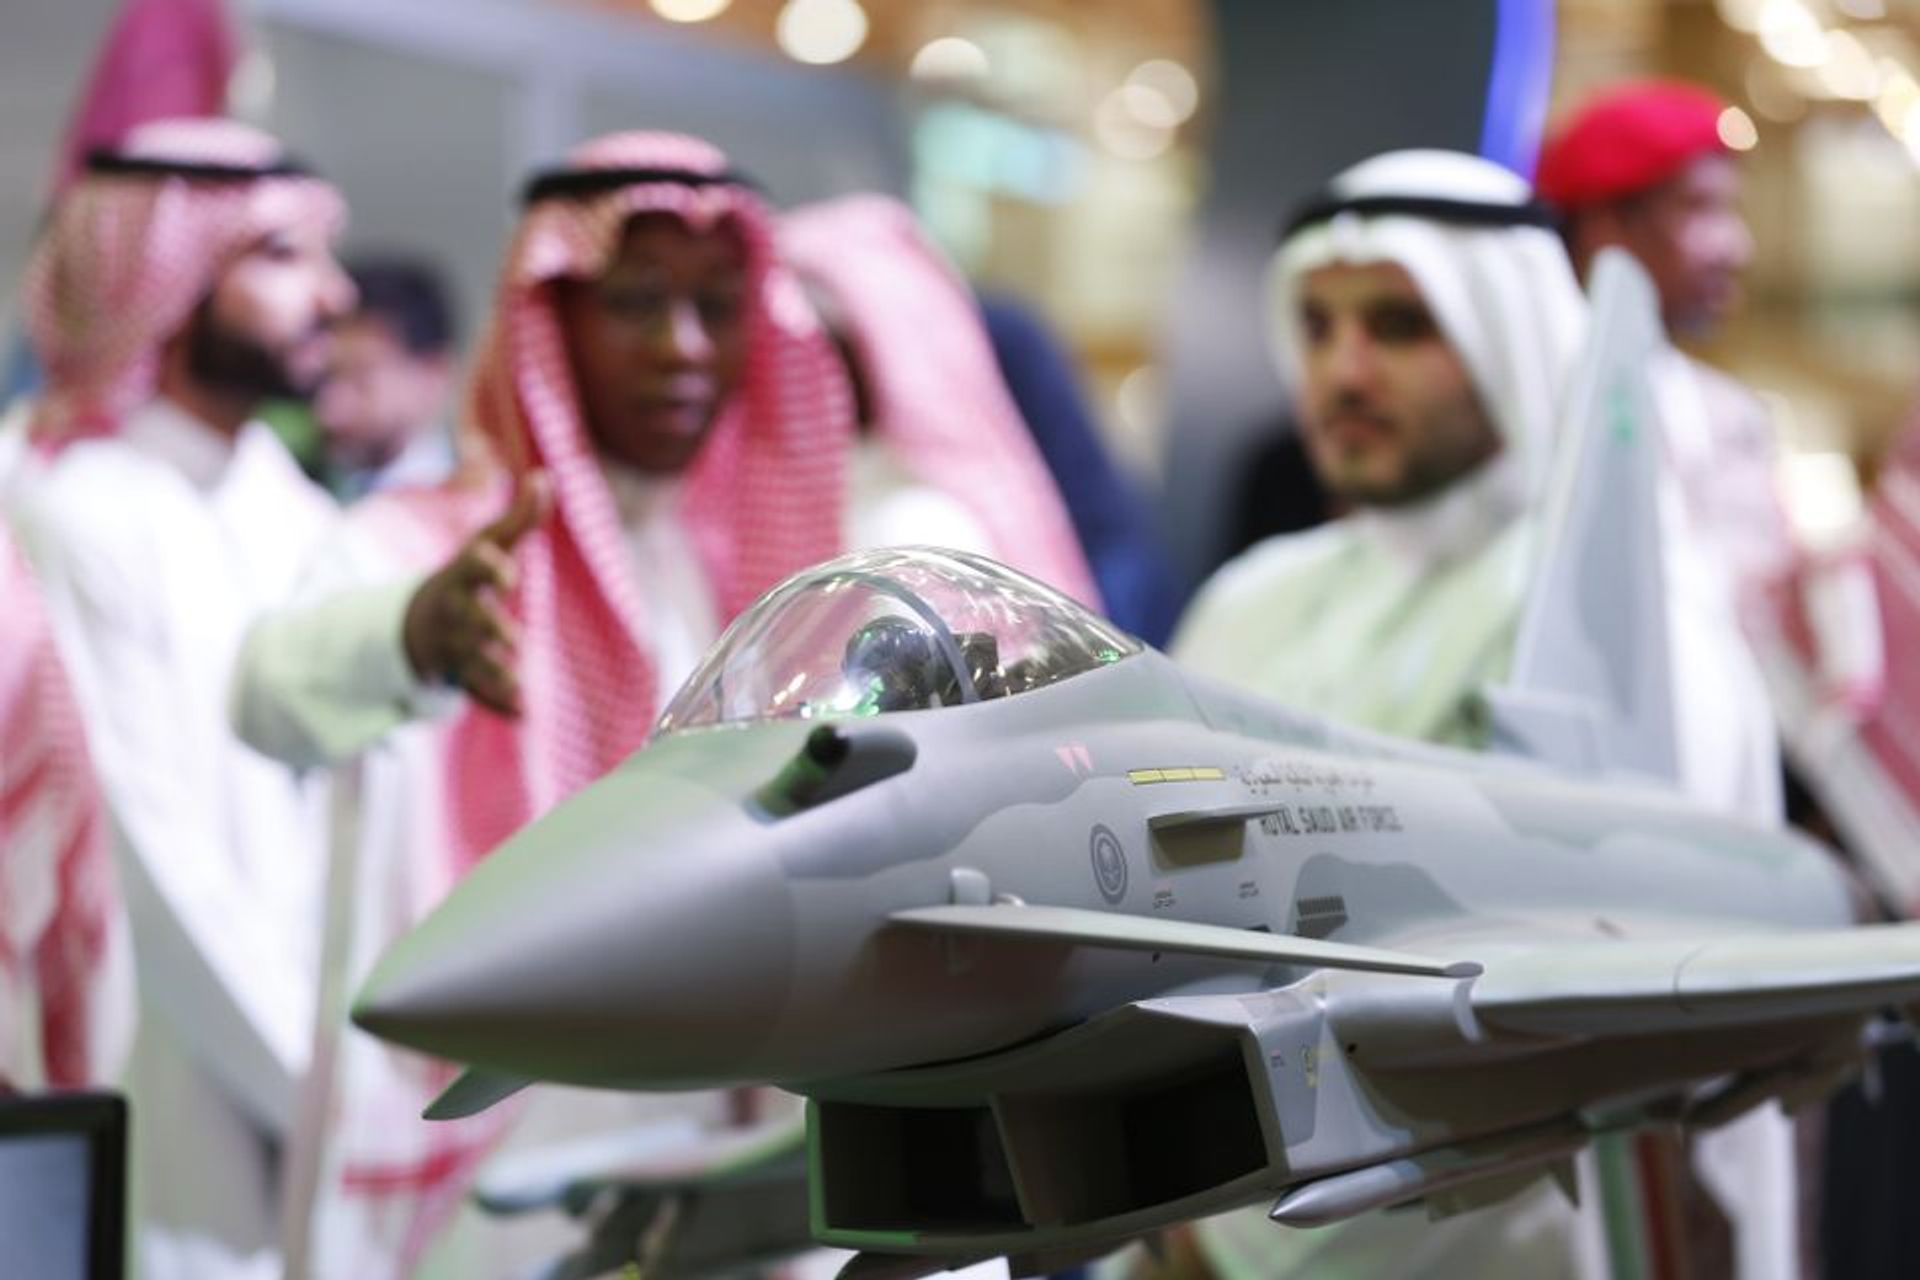 Visitors look at a display model of a Saudi Air Force Eurofighter Typhoon jet, manufactured by BAE Systems Plc, at the Armed Forces Exhibition for Diversity of Requirements and Capabilities (AFED) in Riyadh, Saudi Arabia, on 27 February Mohammed Almuaalemi/Bloomberg via Getty Images